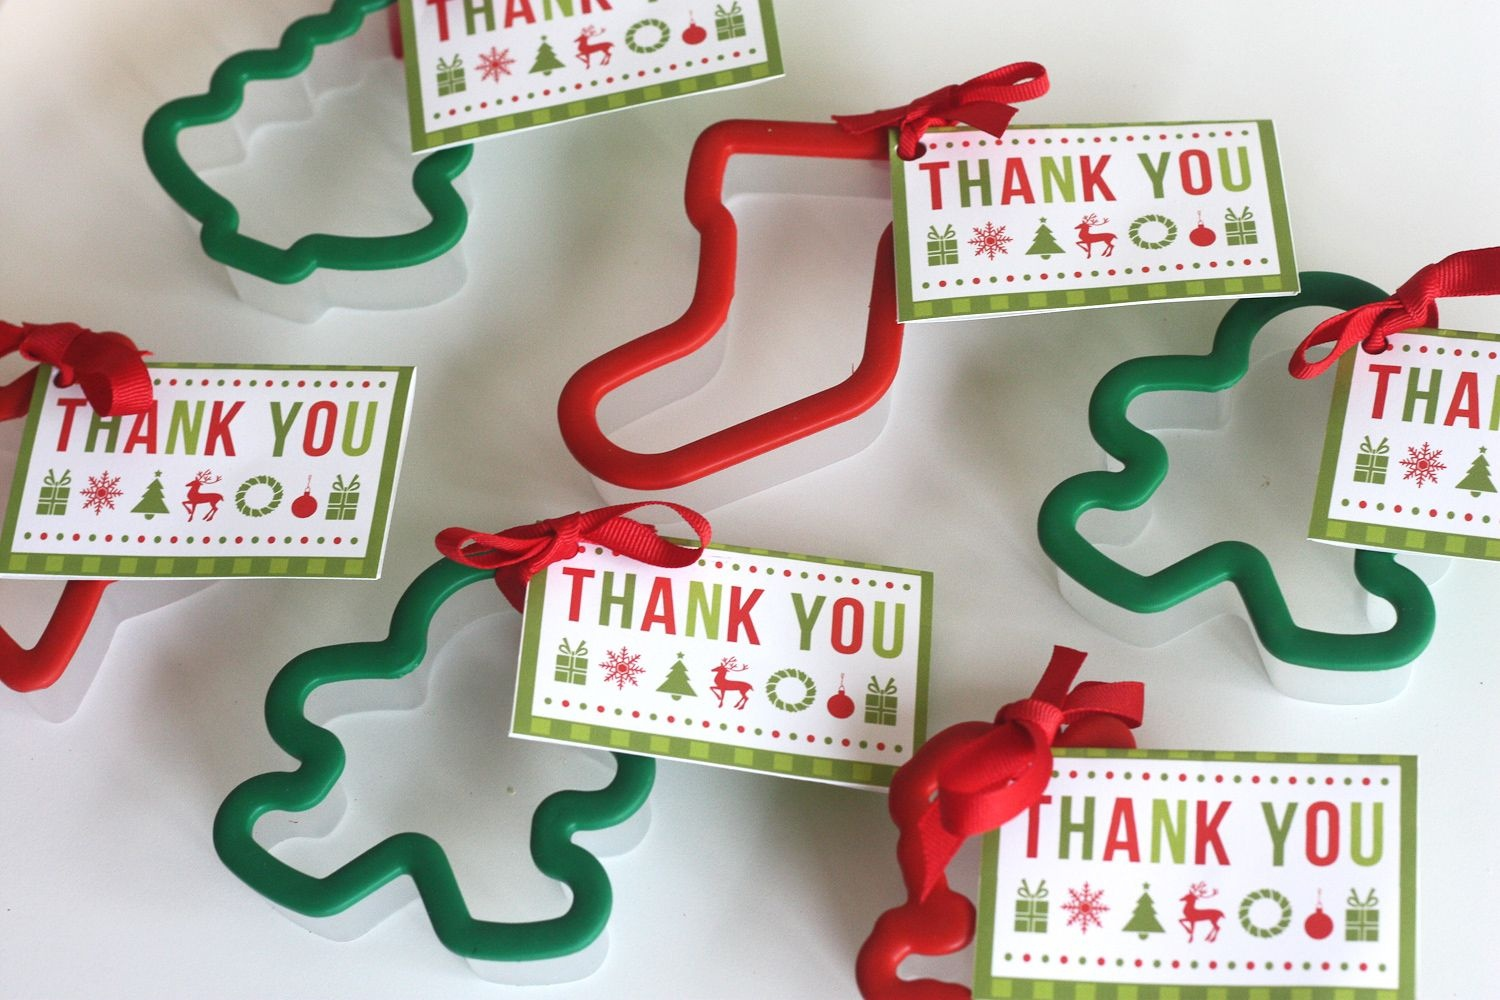 Free Cookies & Cocoa Christmas Printables | Cookie Exchange - Free Christmas Cookie Exchange Printable Invitation